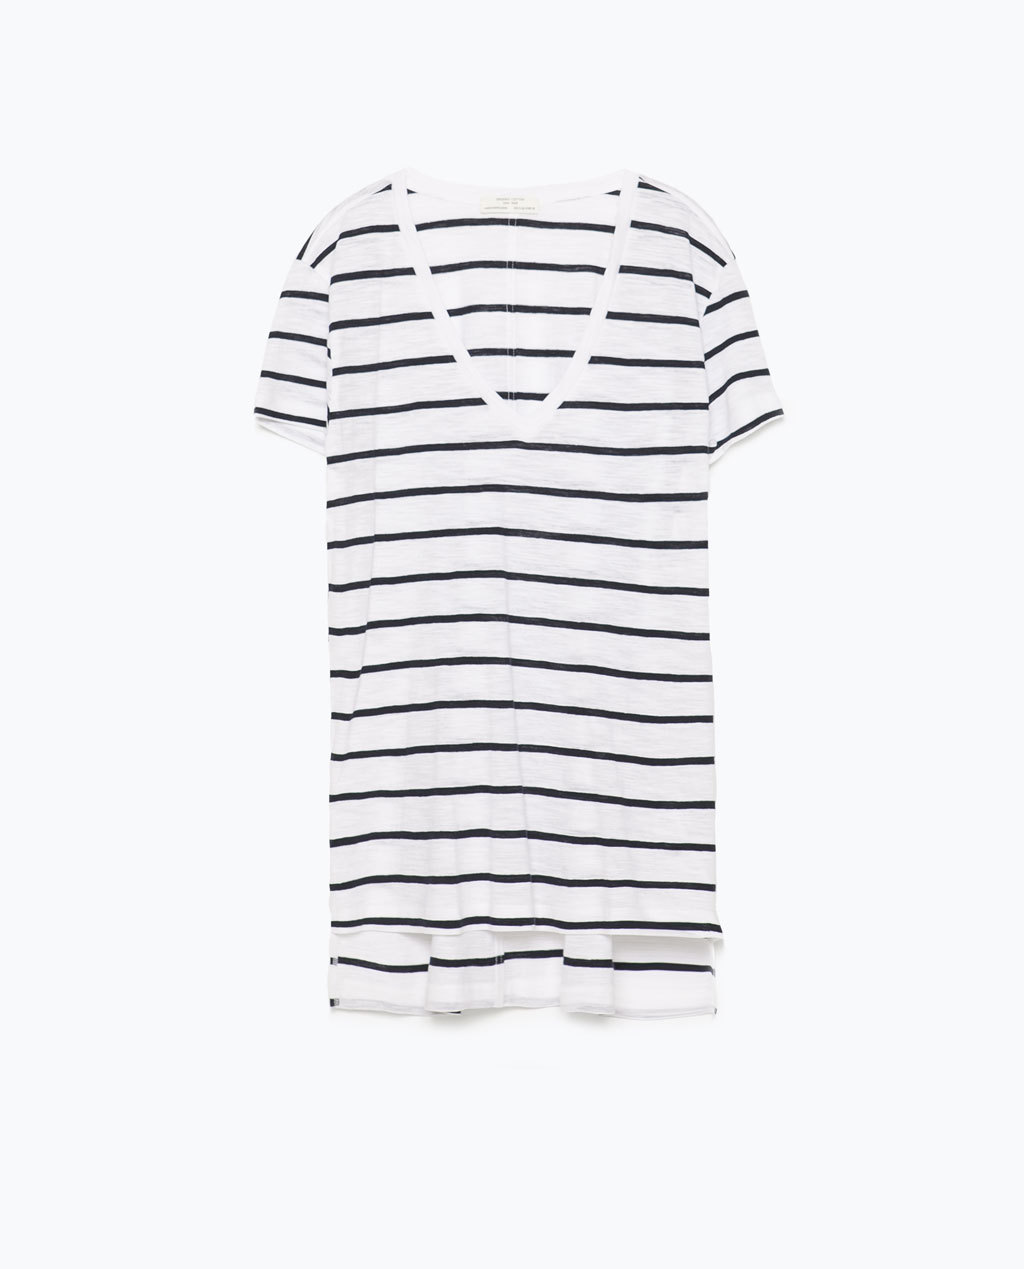 V Neck Striped T Shirt - neckline: low v-neck; pattern: horizontal stripes; length: below the bottom; style: t-shirt; predominant colour: white; secondary colour: navy; occasions: casual, holiday; fit: loose; sleeve length: short sleeve; sleeve style: standard; pattern type: fabric; pattern size: standard; texture group: jersey - stretchy/drapey; season: s/s 2015; wardrobe: basic